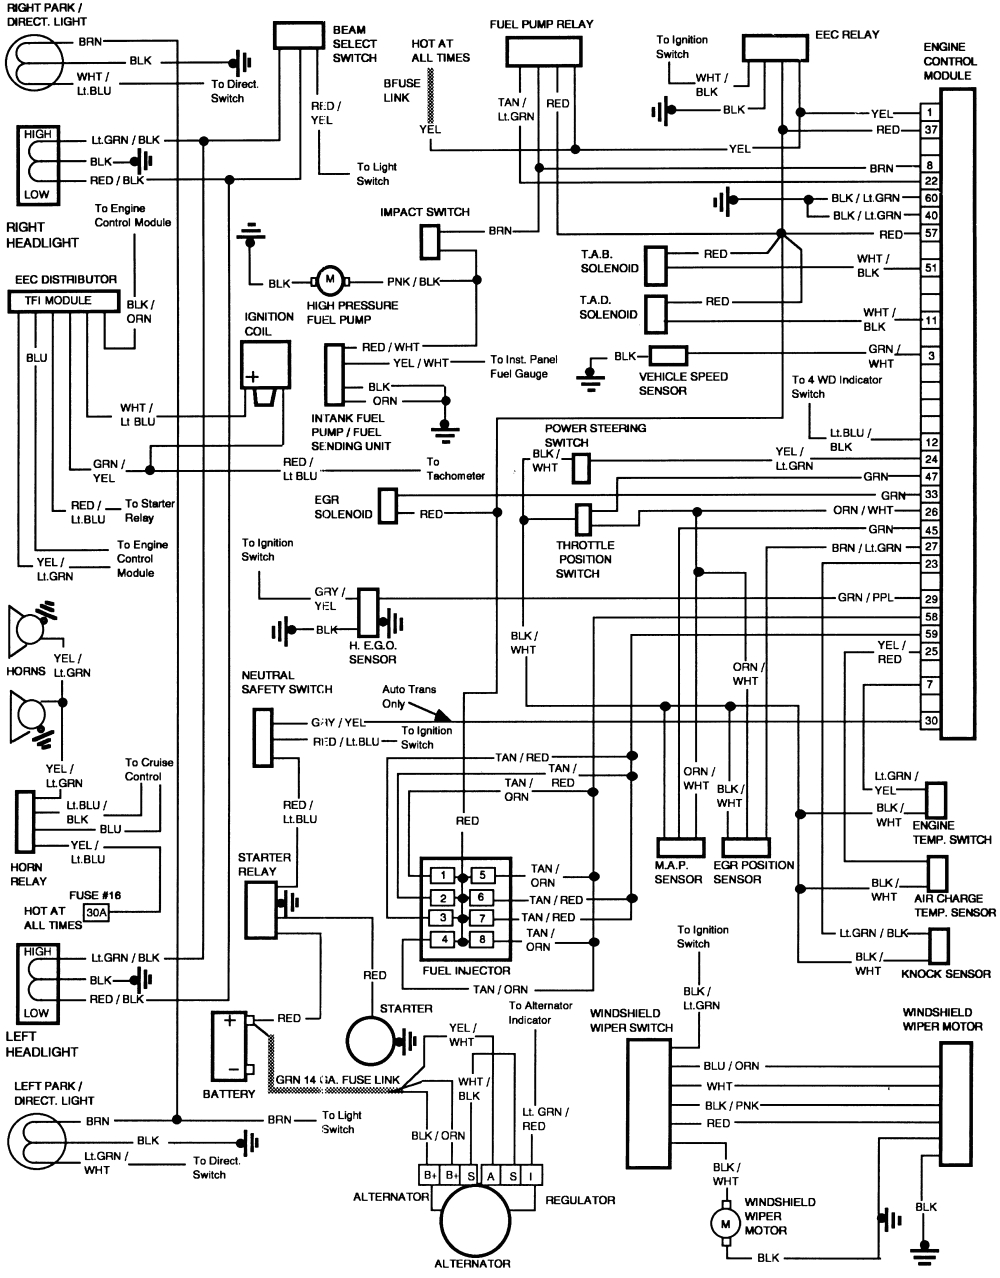 wiring diagram for lights in a 1986 ford f150 1986 f150 351w 1986 ford bronco wiring diagram 1986 ford wiring diagram